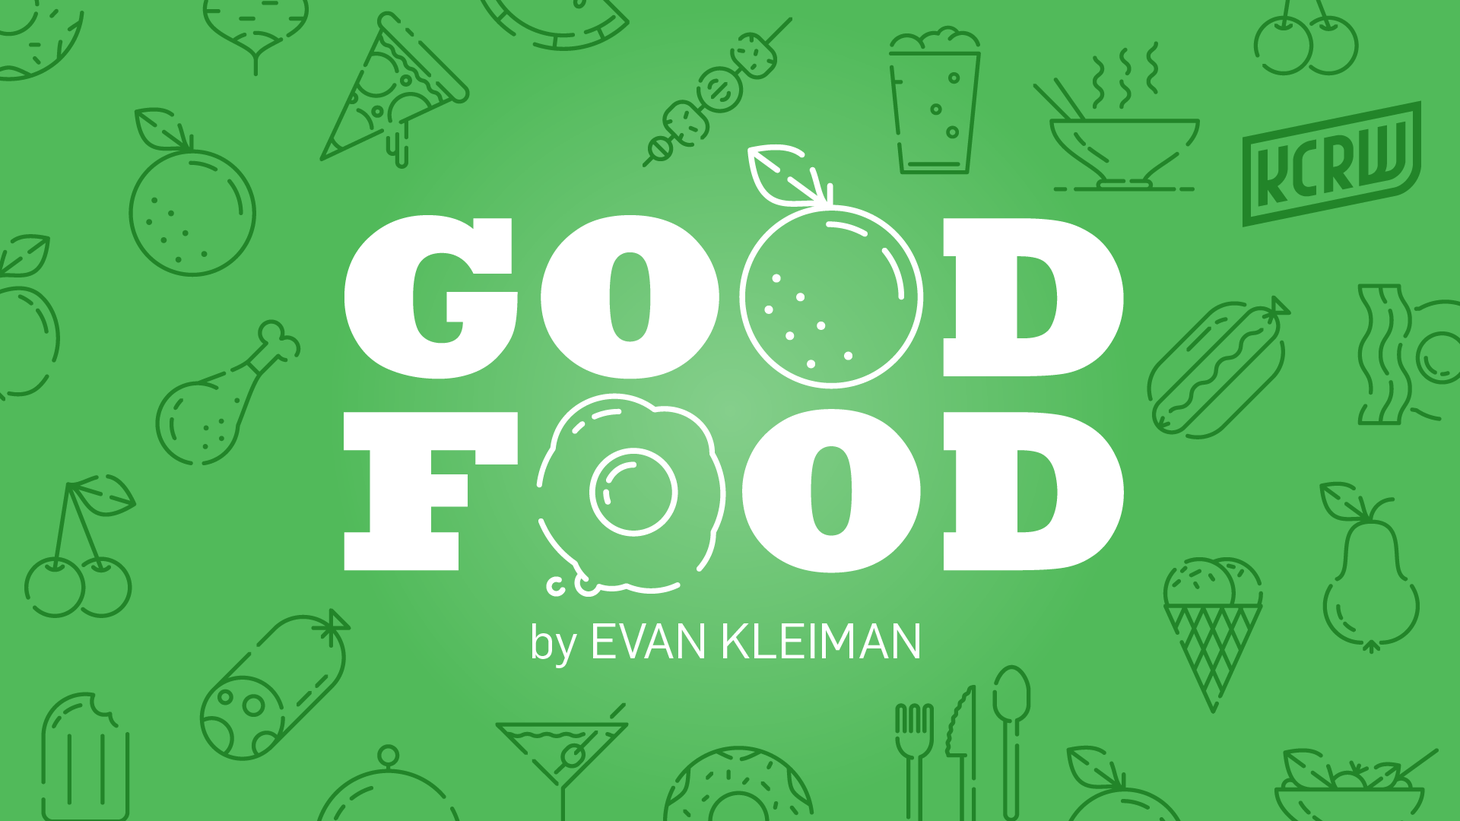 Fifteen years ago this month, Evan Kleiman recorded her first interview as host of Good Food. Hear classic segments like Julia Child, Anthony Bourdain and Ruth Reichl.